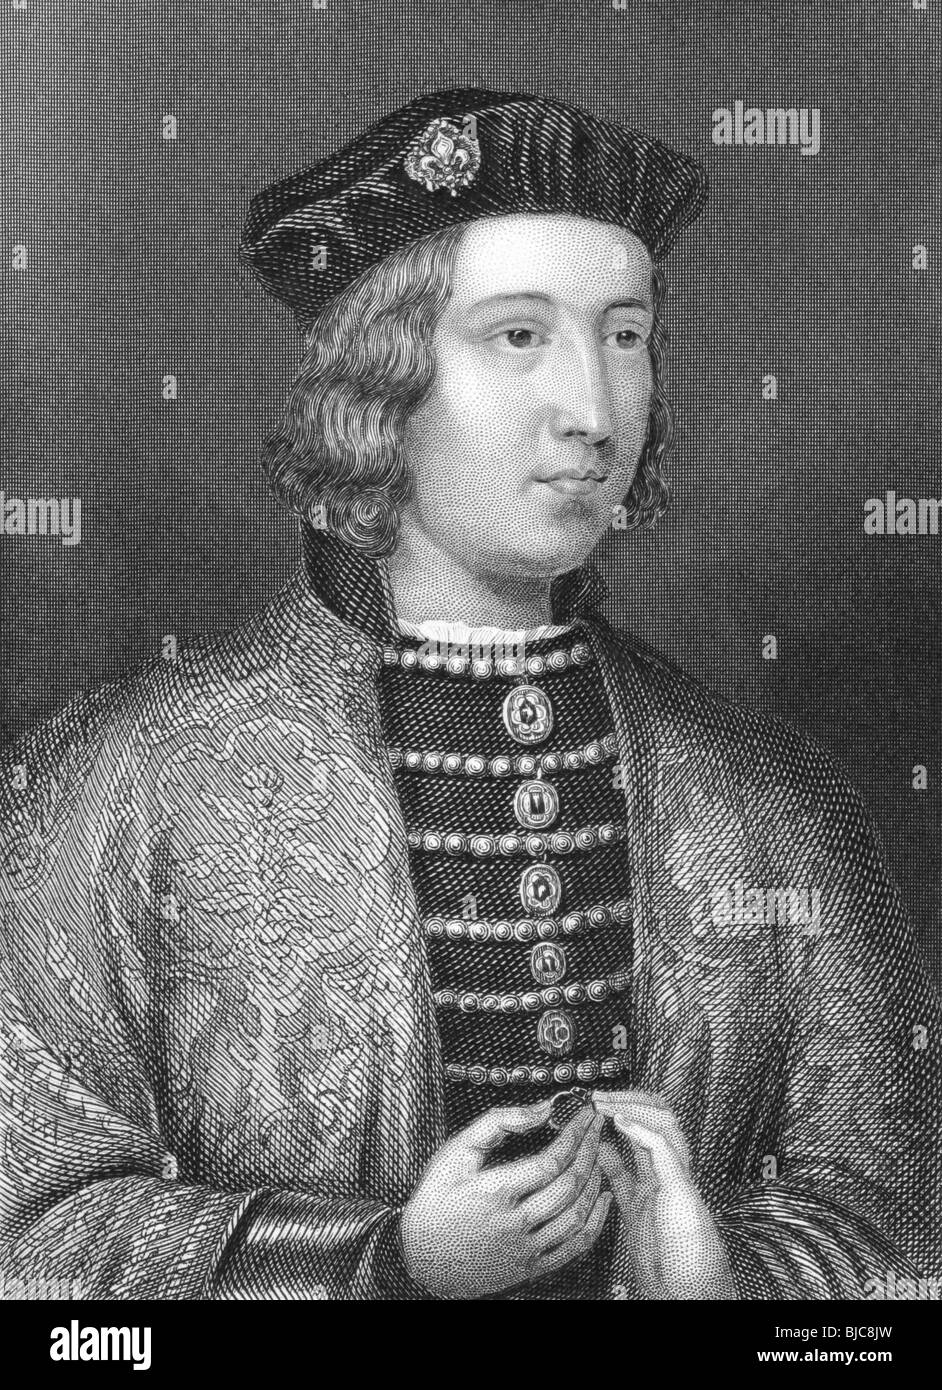 Edward IV (1442-1483) on engraving from the 1800s. - Stock Image